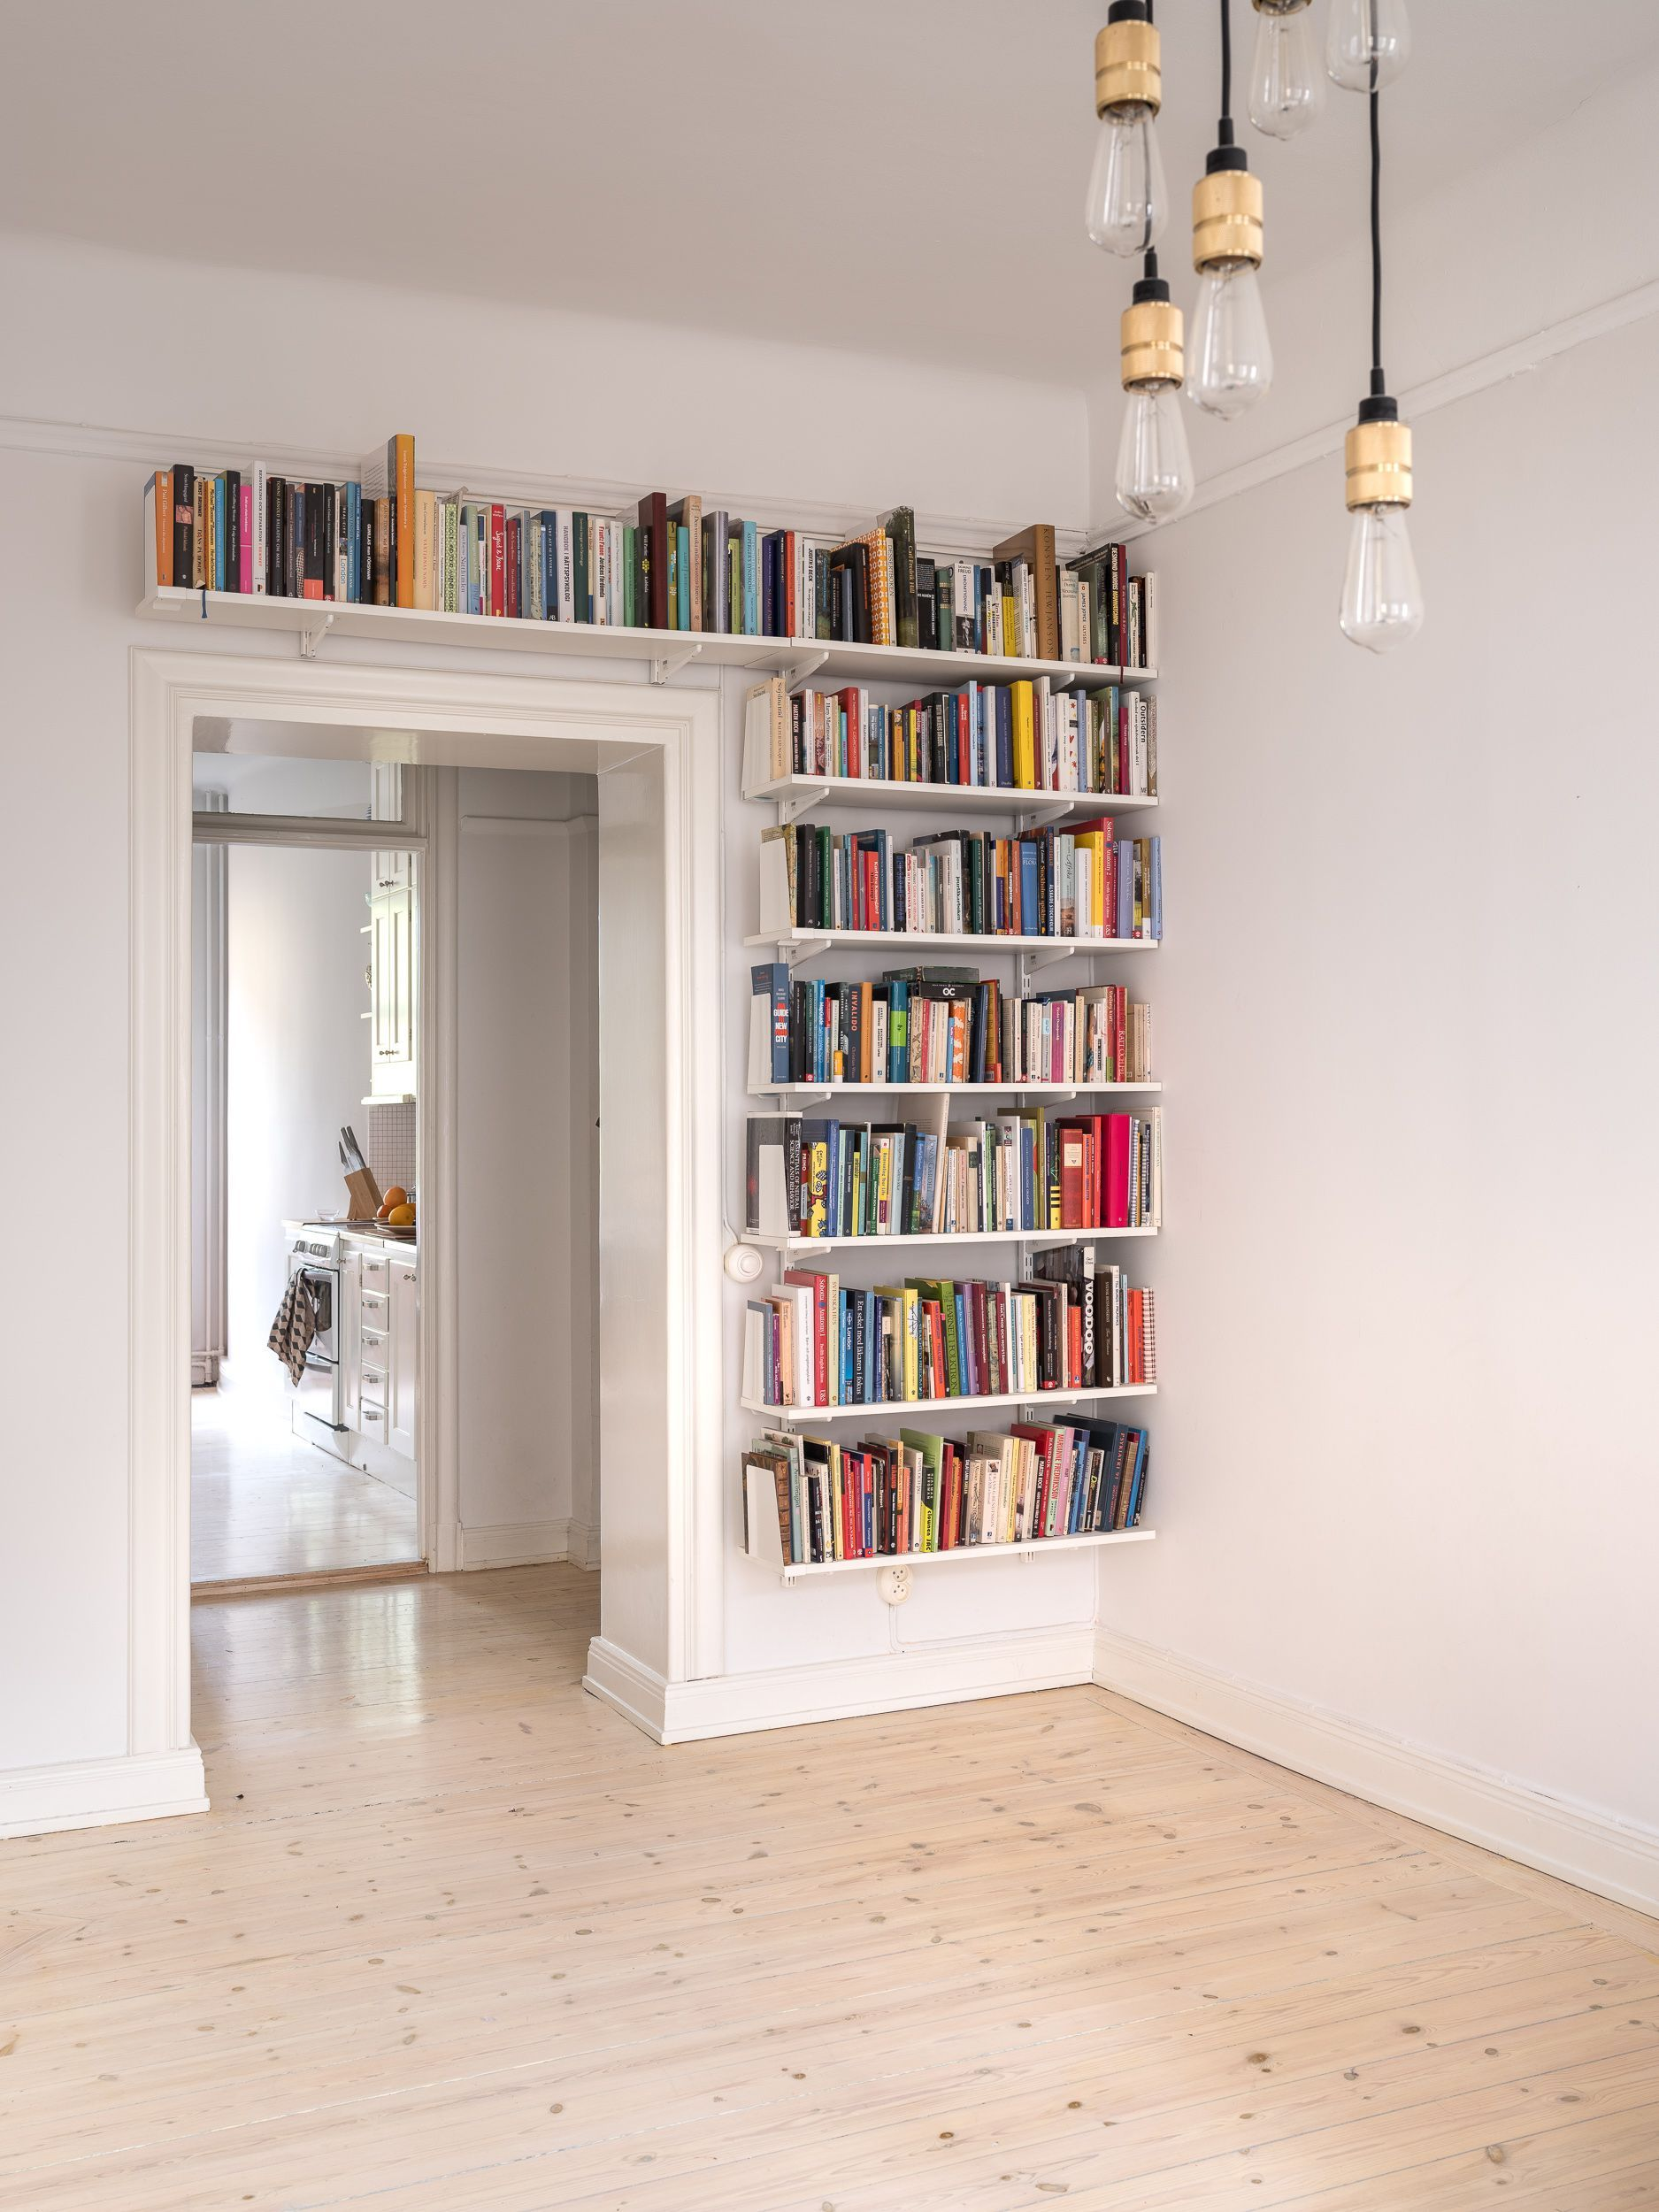 Krone Kern Home Bookshelves For Small Spaces Home House Interior